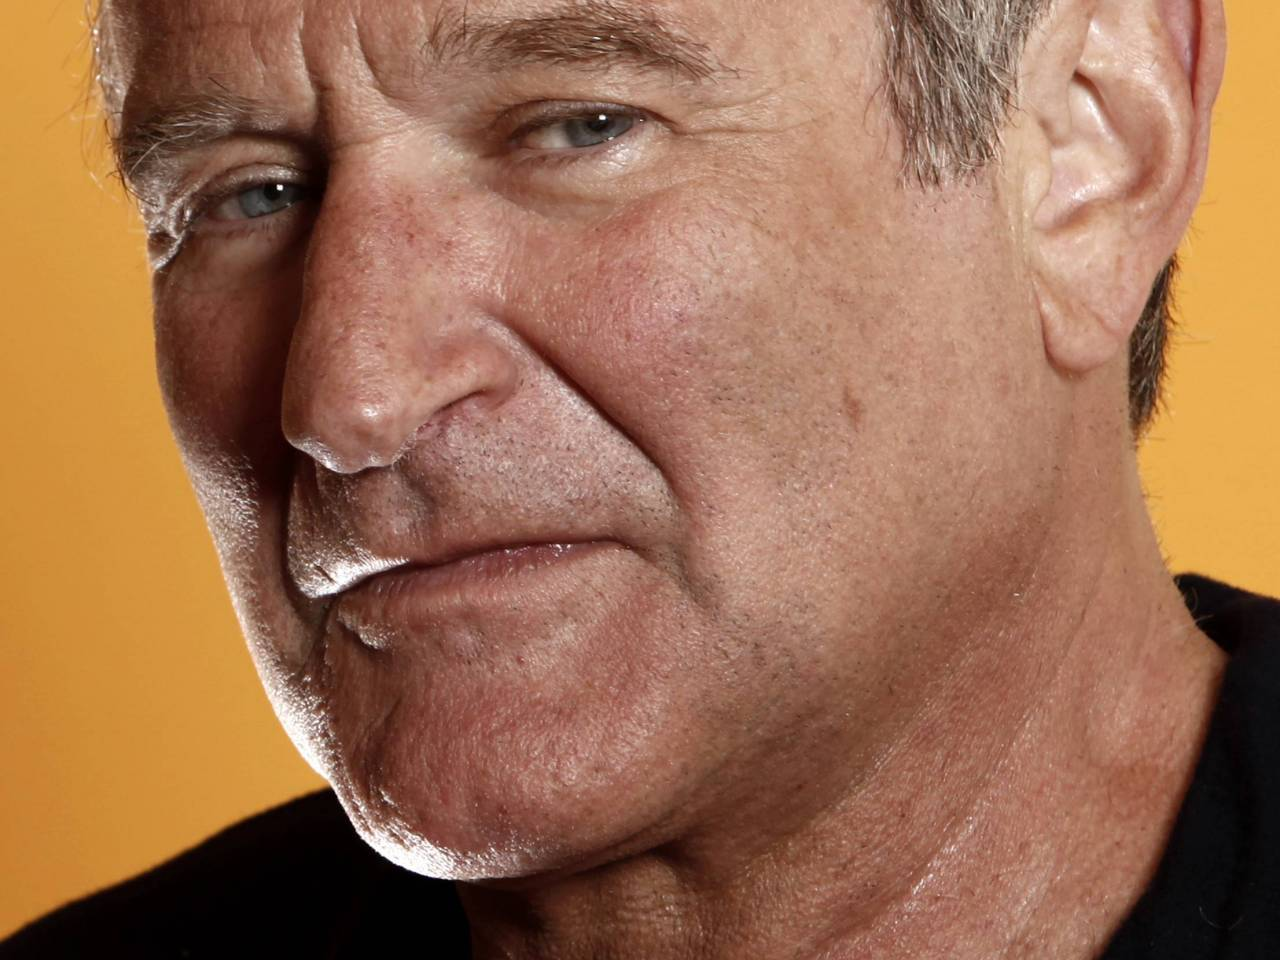 GOOD MOORNING VIETNAM : QUELL'ATTIMO FUGGENTE E INESORABILE - due anni fa la scomparsa di Robin Williams